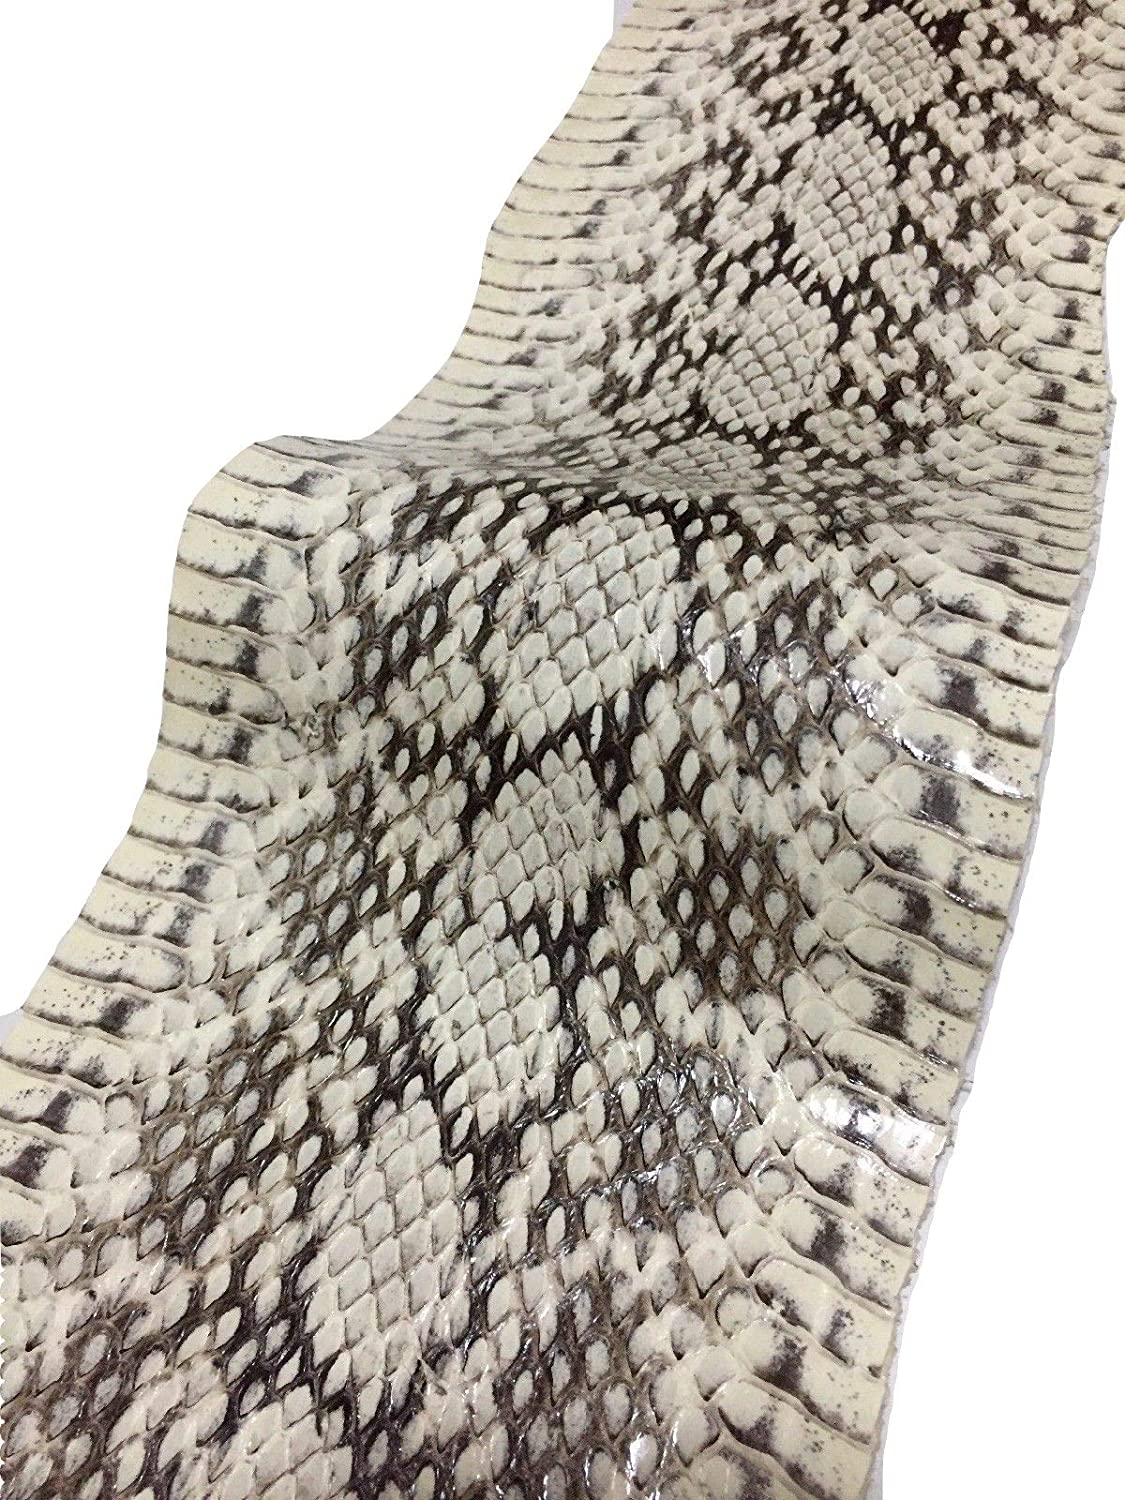 Asia Snake Skin Hide Leather Snakeskin Craft Supply White Glossy